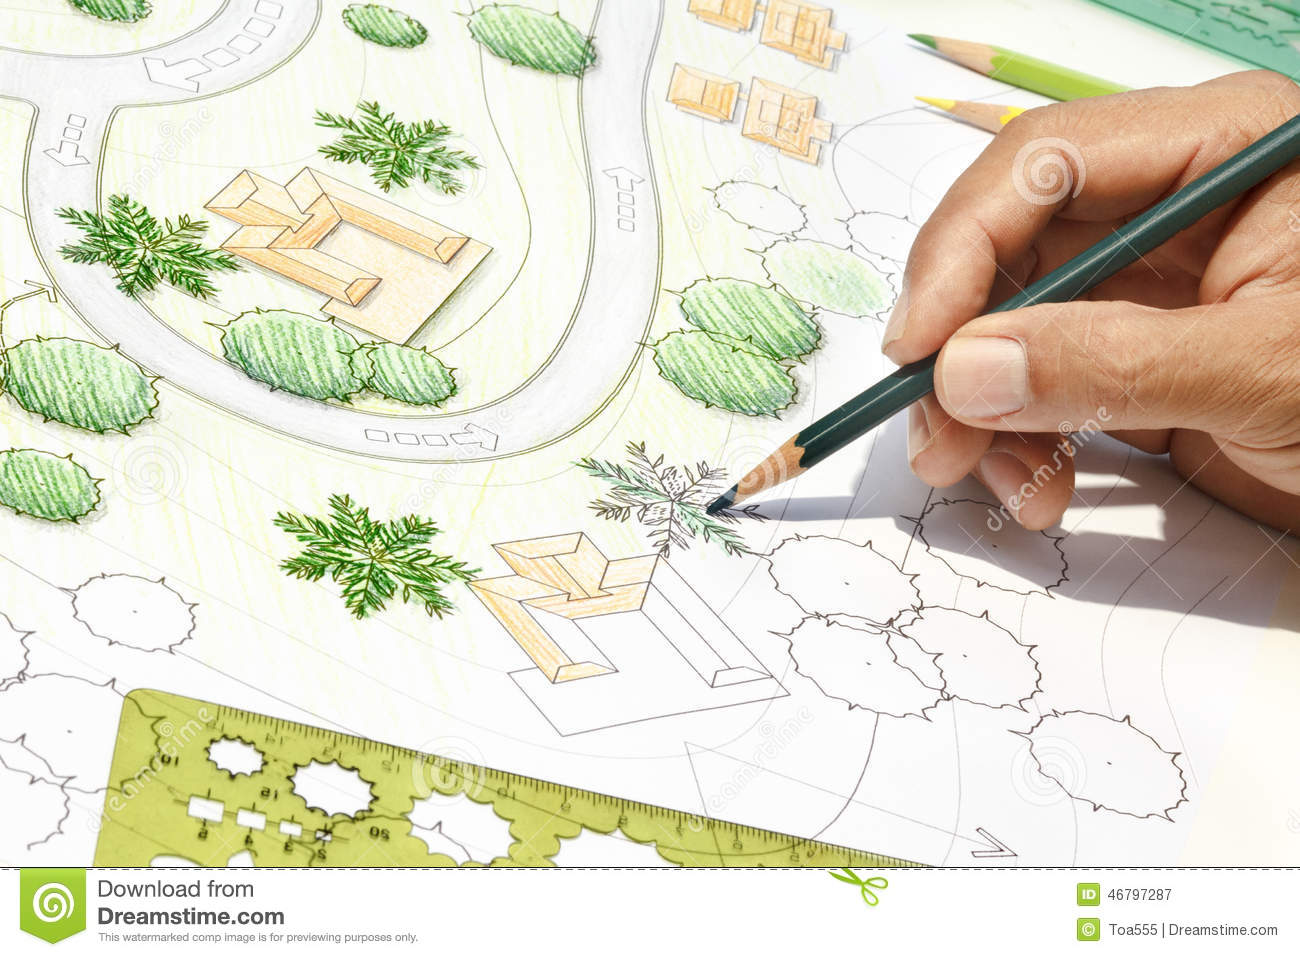 Architecte paysagiste designing sur le plan de situation for Site de paysagiste